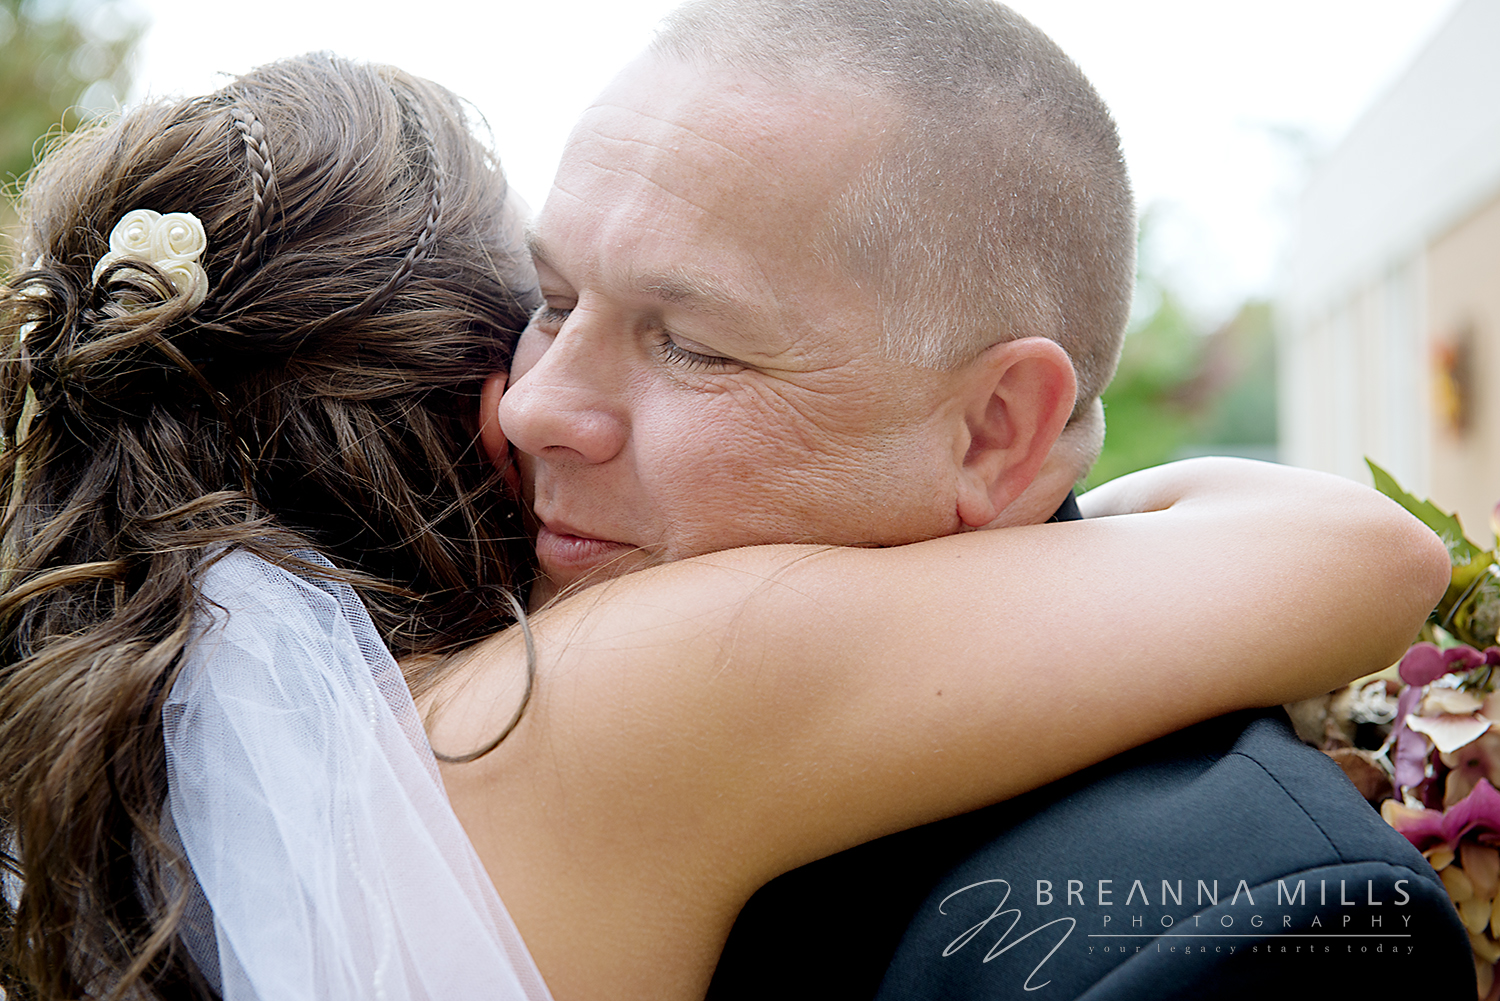 Johnson City Wedding Photographer, Breanna Mills Photography captures a bride and her father on her wedding day.